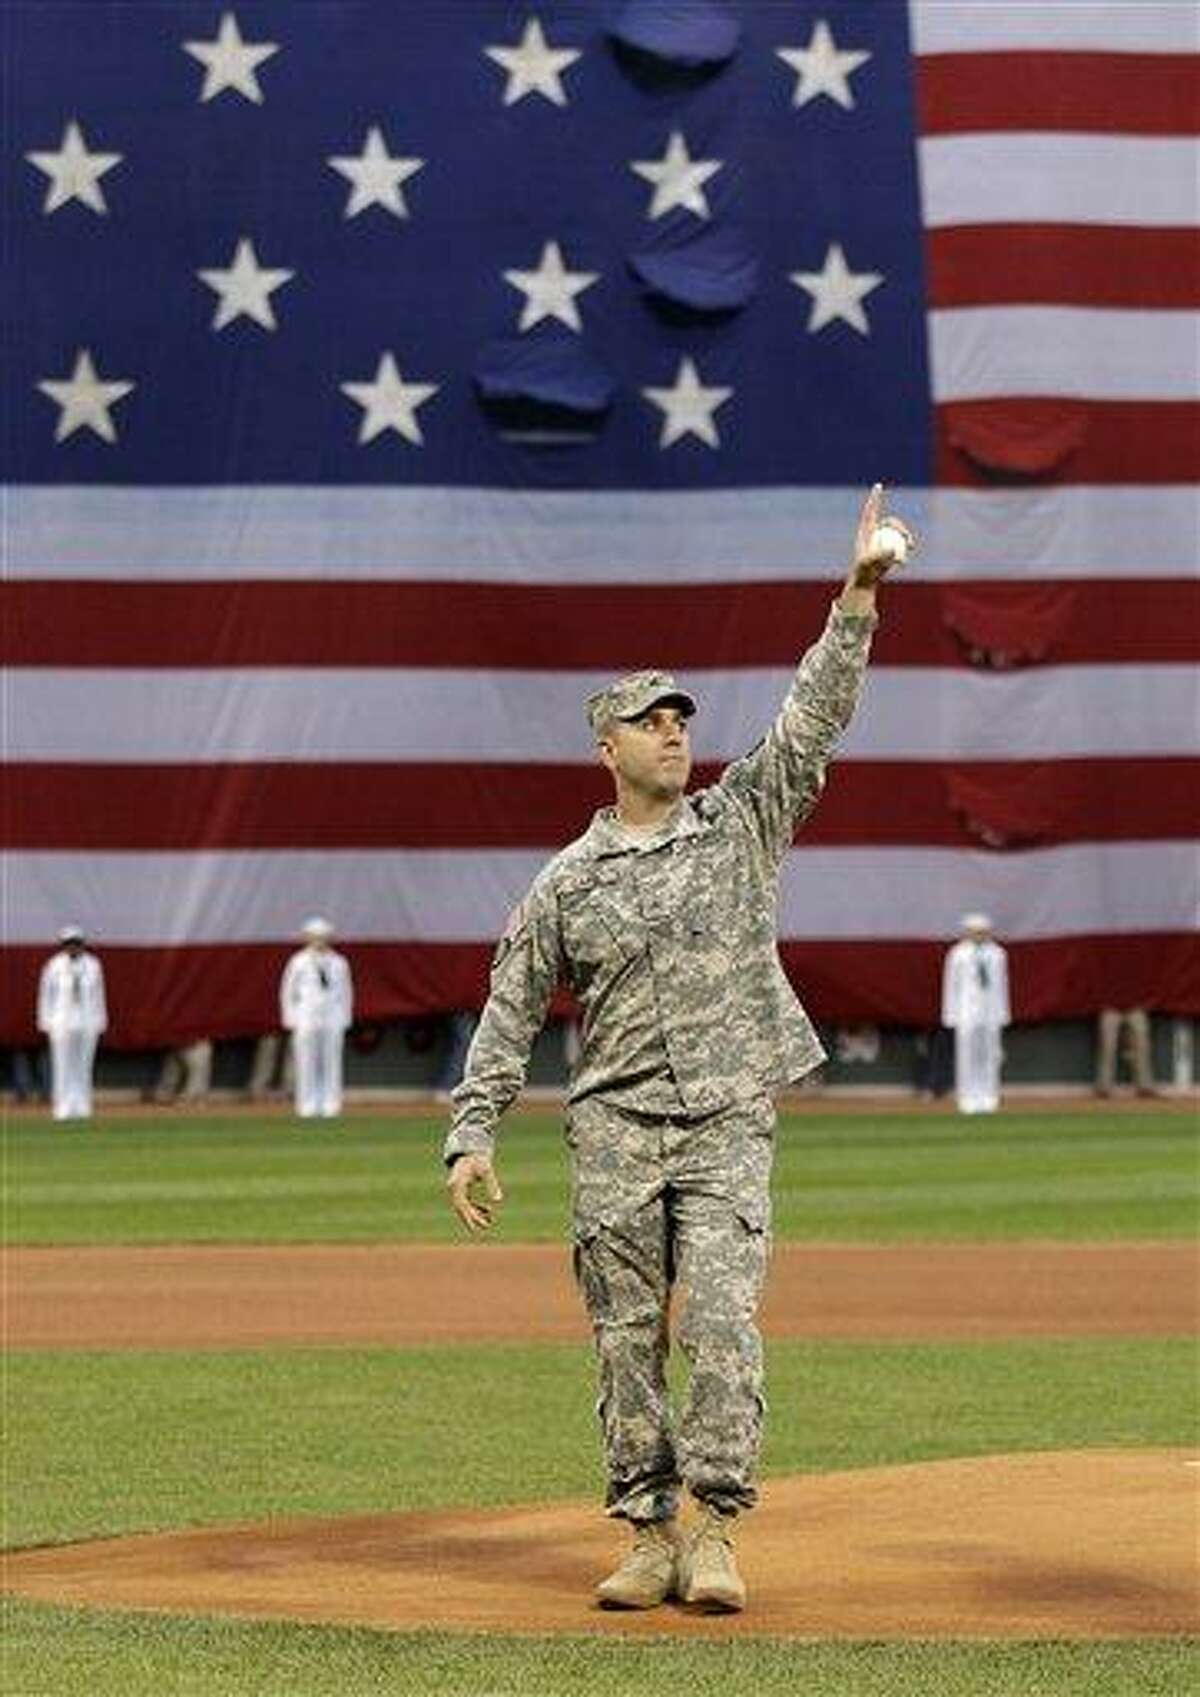 With a giant U.S. flag draped across the left field wall, U.S. Army Ranger Sgt. Lucas Carr, of the South Boston neighborhood of Boston, acknowledges fans prior to throwing out the ceremonial first pitch prior to a baseball game between the Boston Red Sox and the Los Angeles Angels at Fenway Park in Boston, Monday, May 2, 2011. The Red Sox honored those who died in the attacks of Sept. 11, 2001. (AP Photo/Charles Krupa)